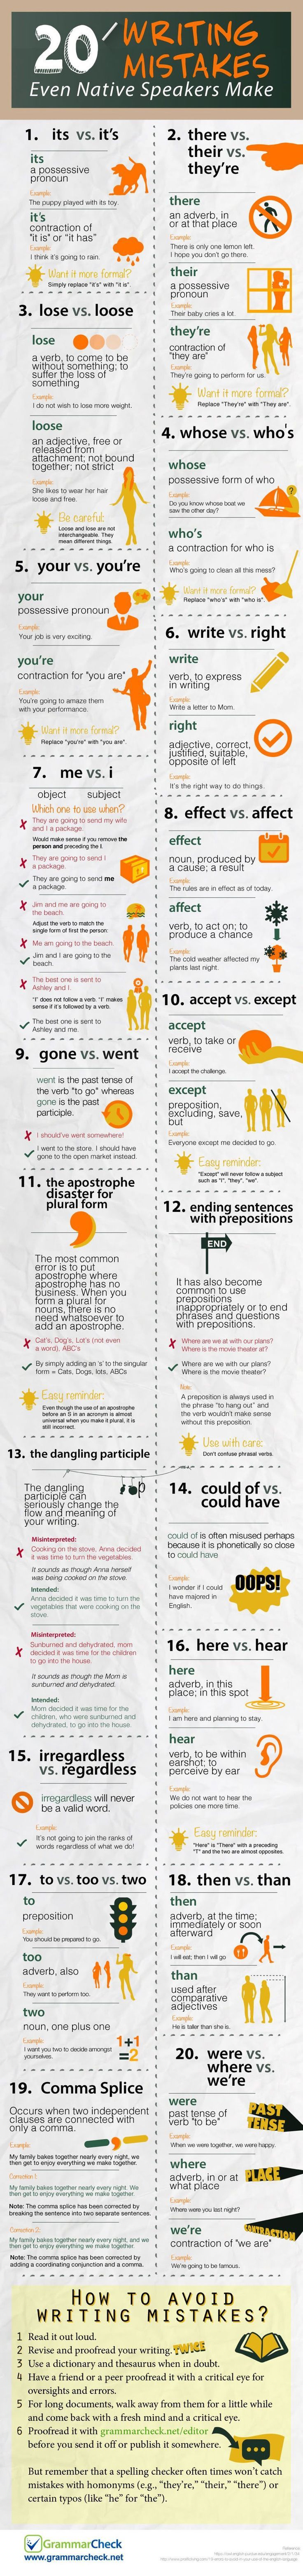 20 writing mistakes even native speakers make (infographic